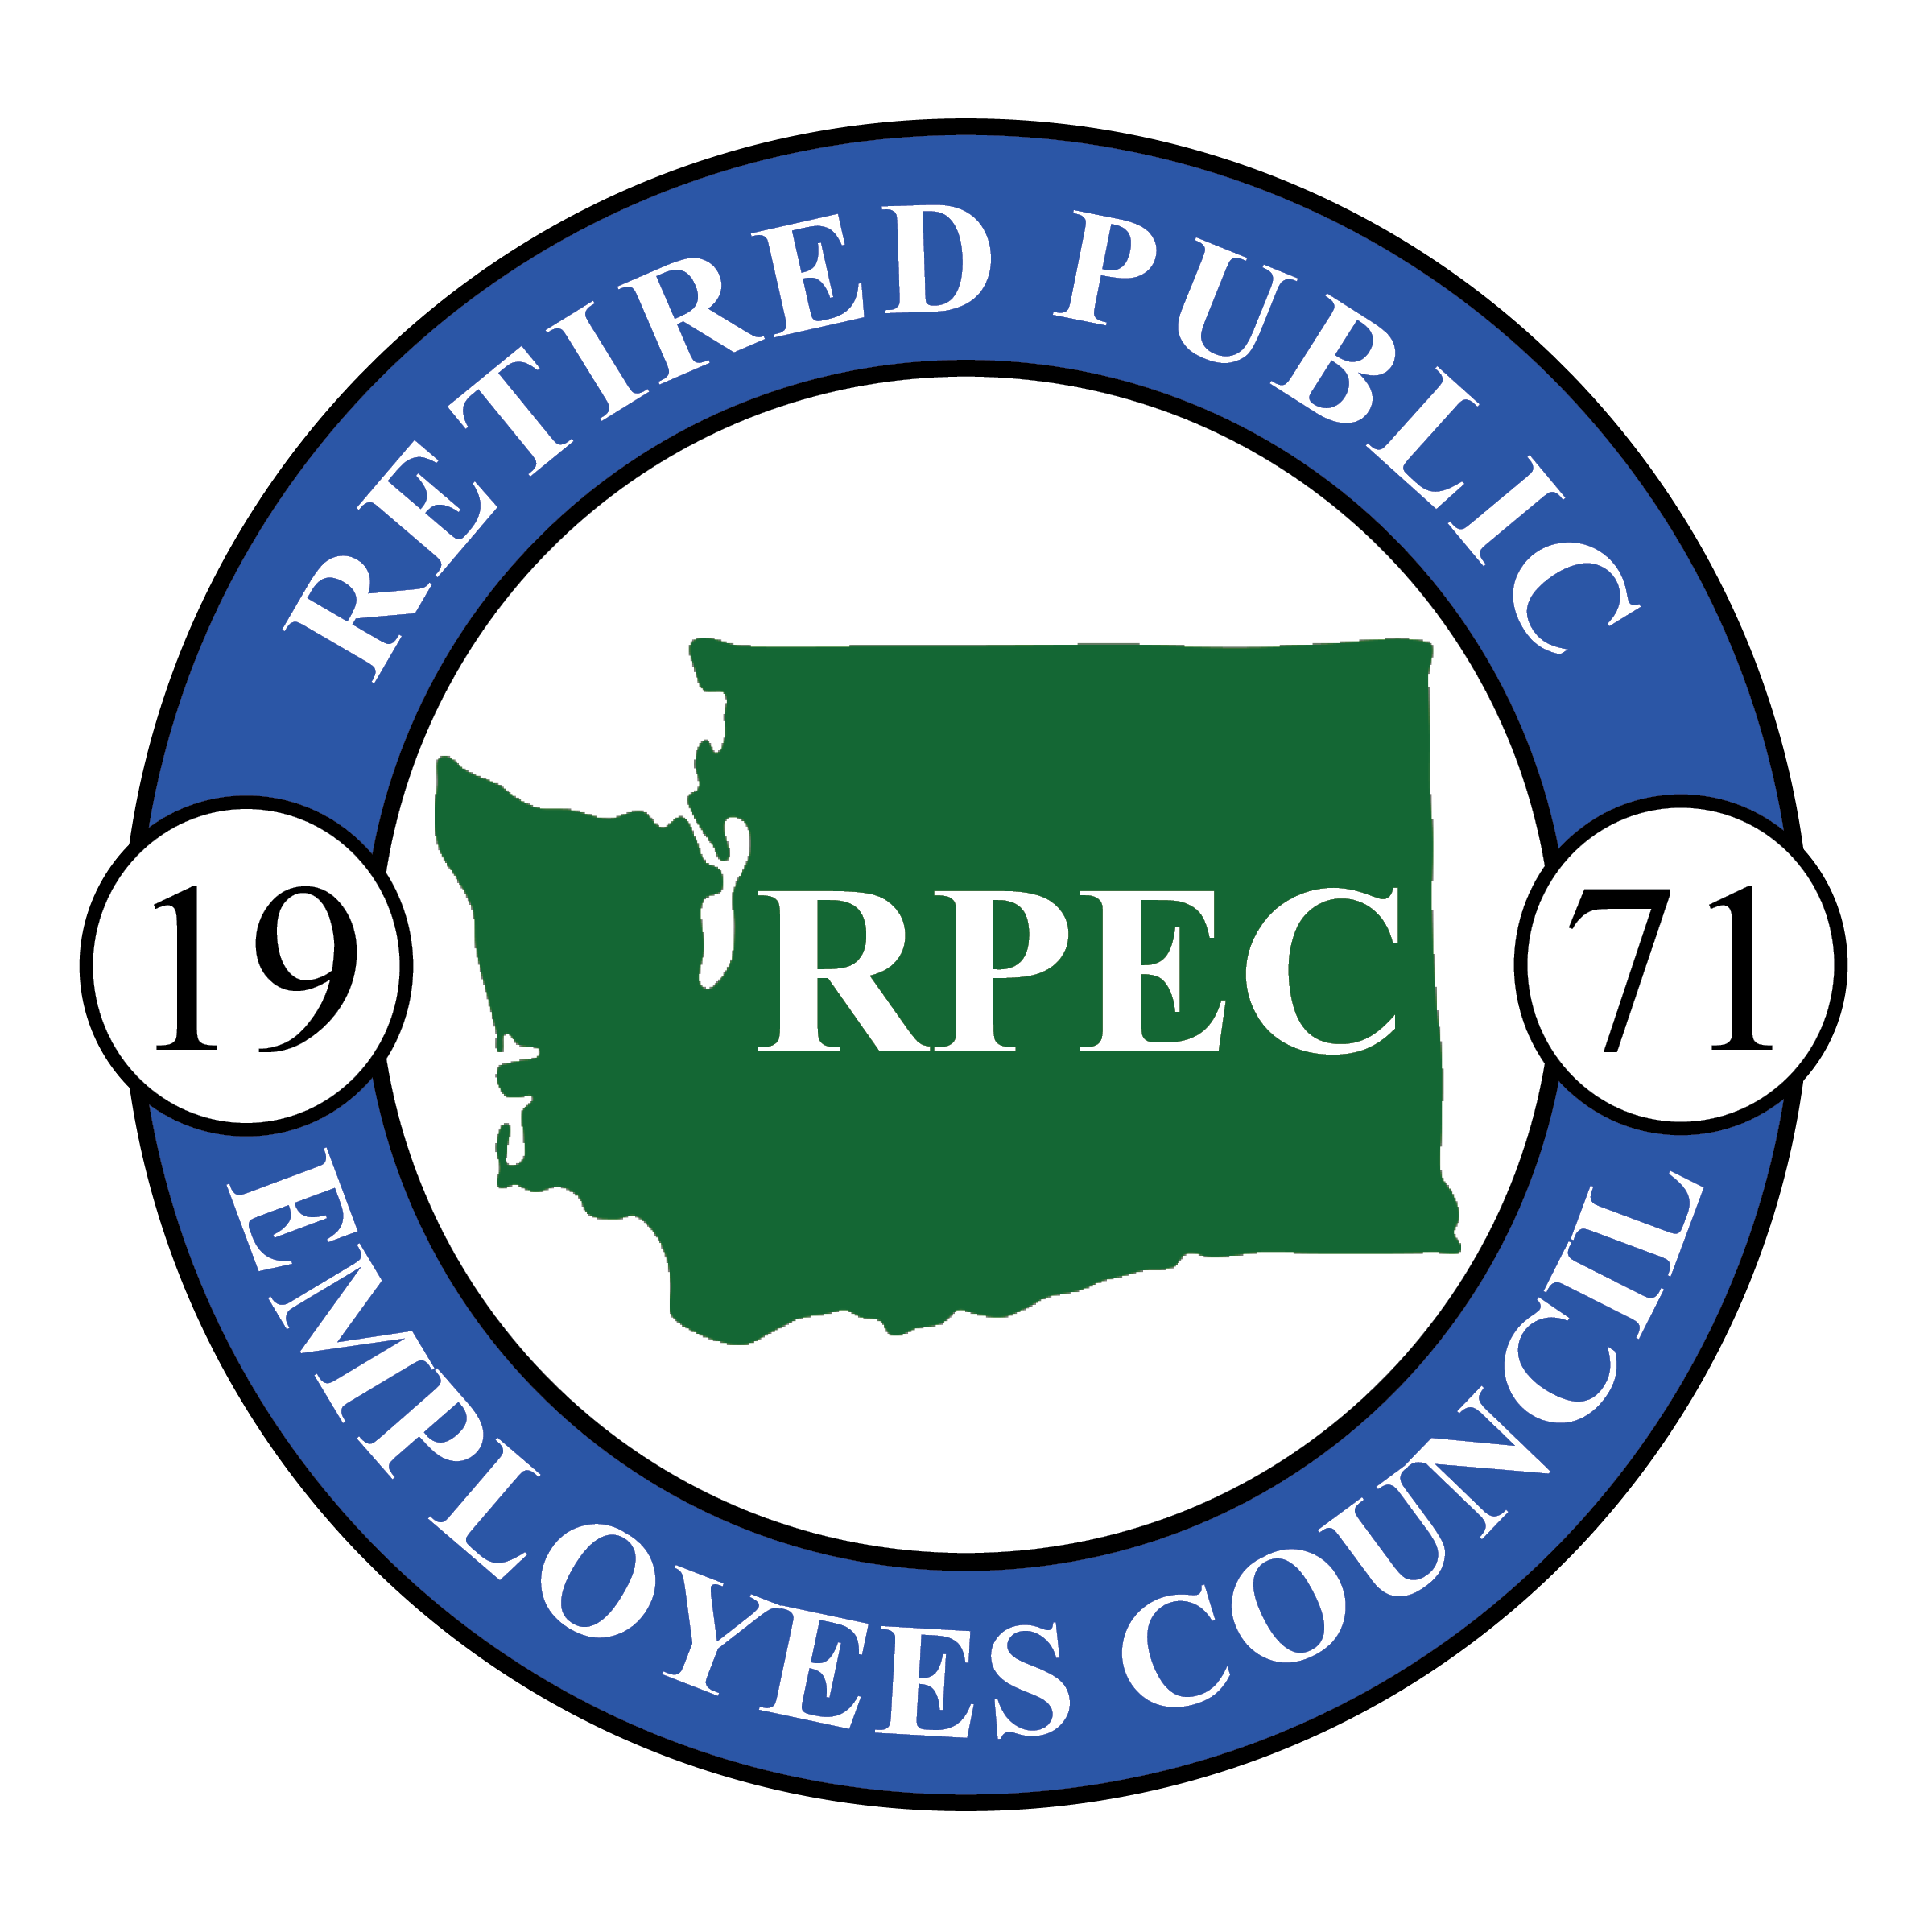 Retired Public Employees Council of WA